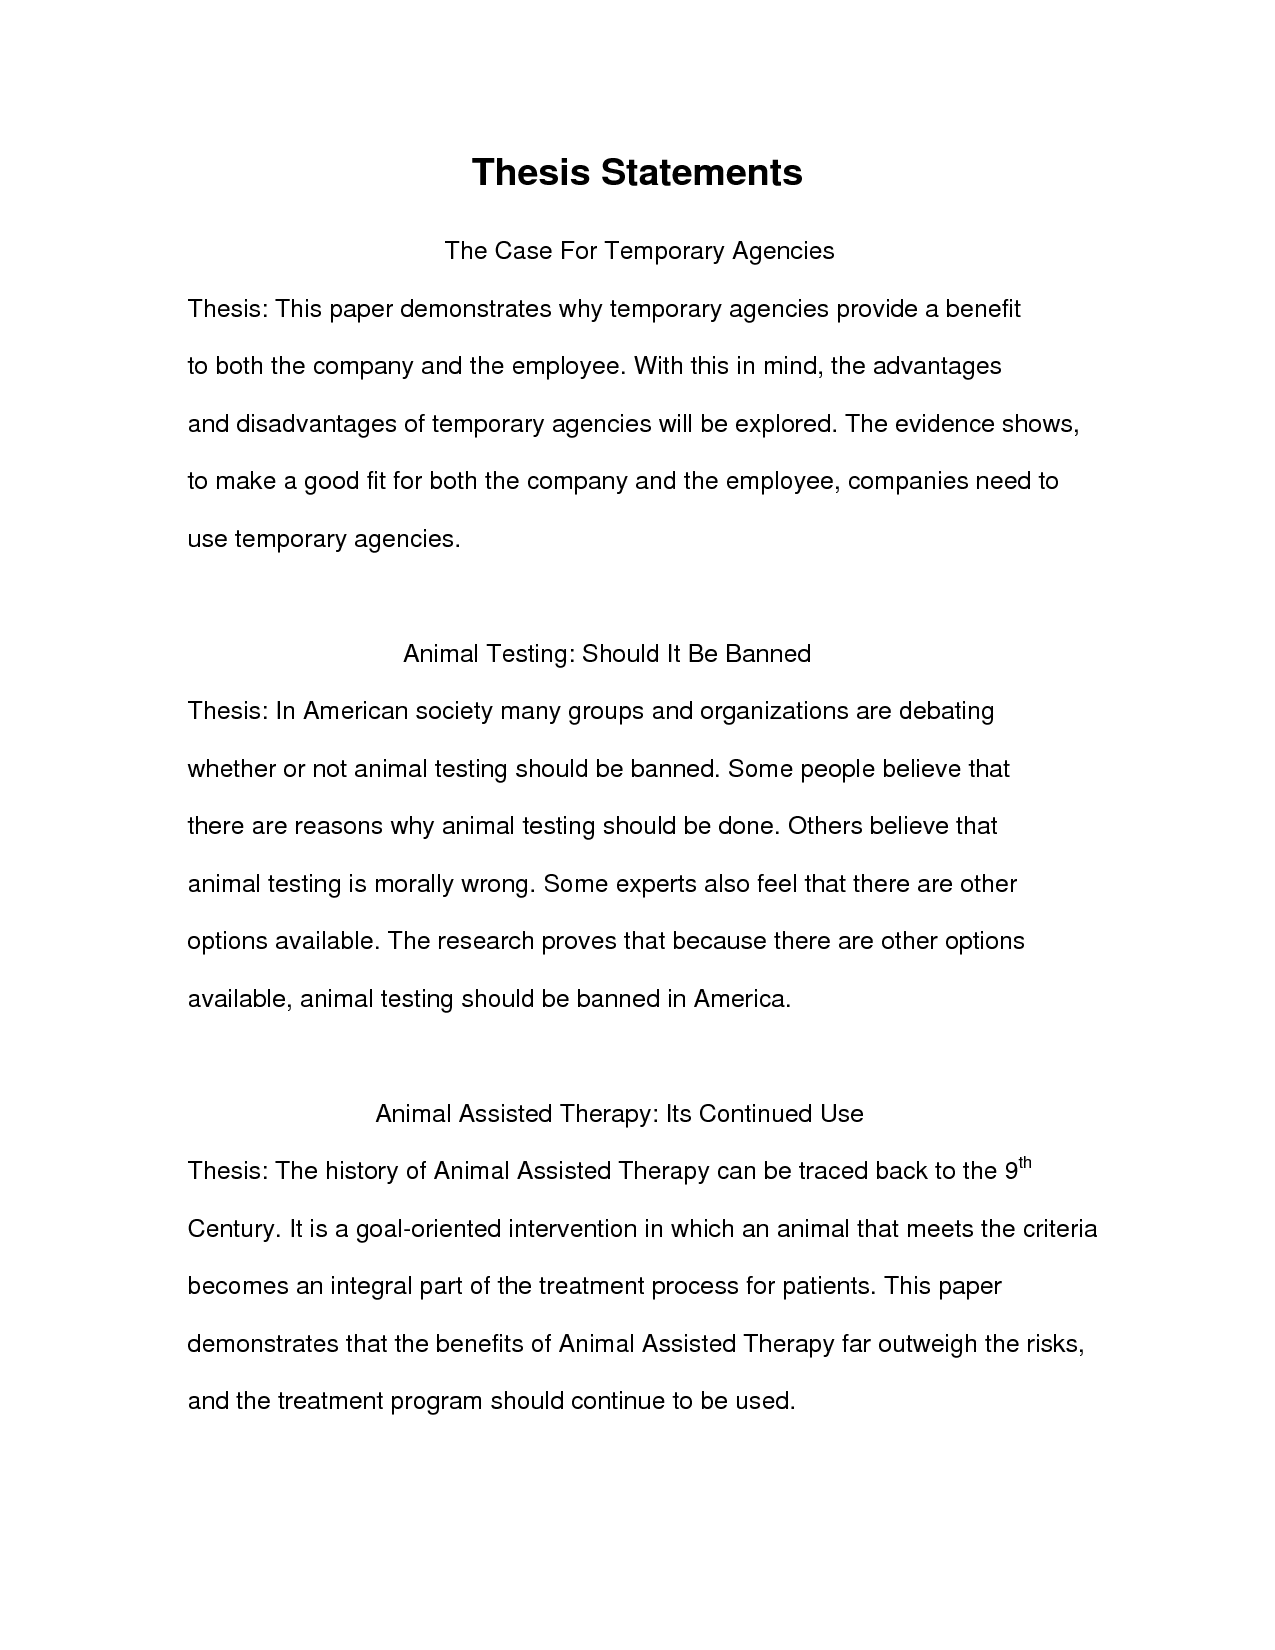 004 Thesis Statement For Research Paper On Abortion Breast Cancer Essay Template Bfnmxz7cfv Examples Of In An How To Unique Write A Pdf Apa Format Full